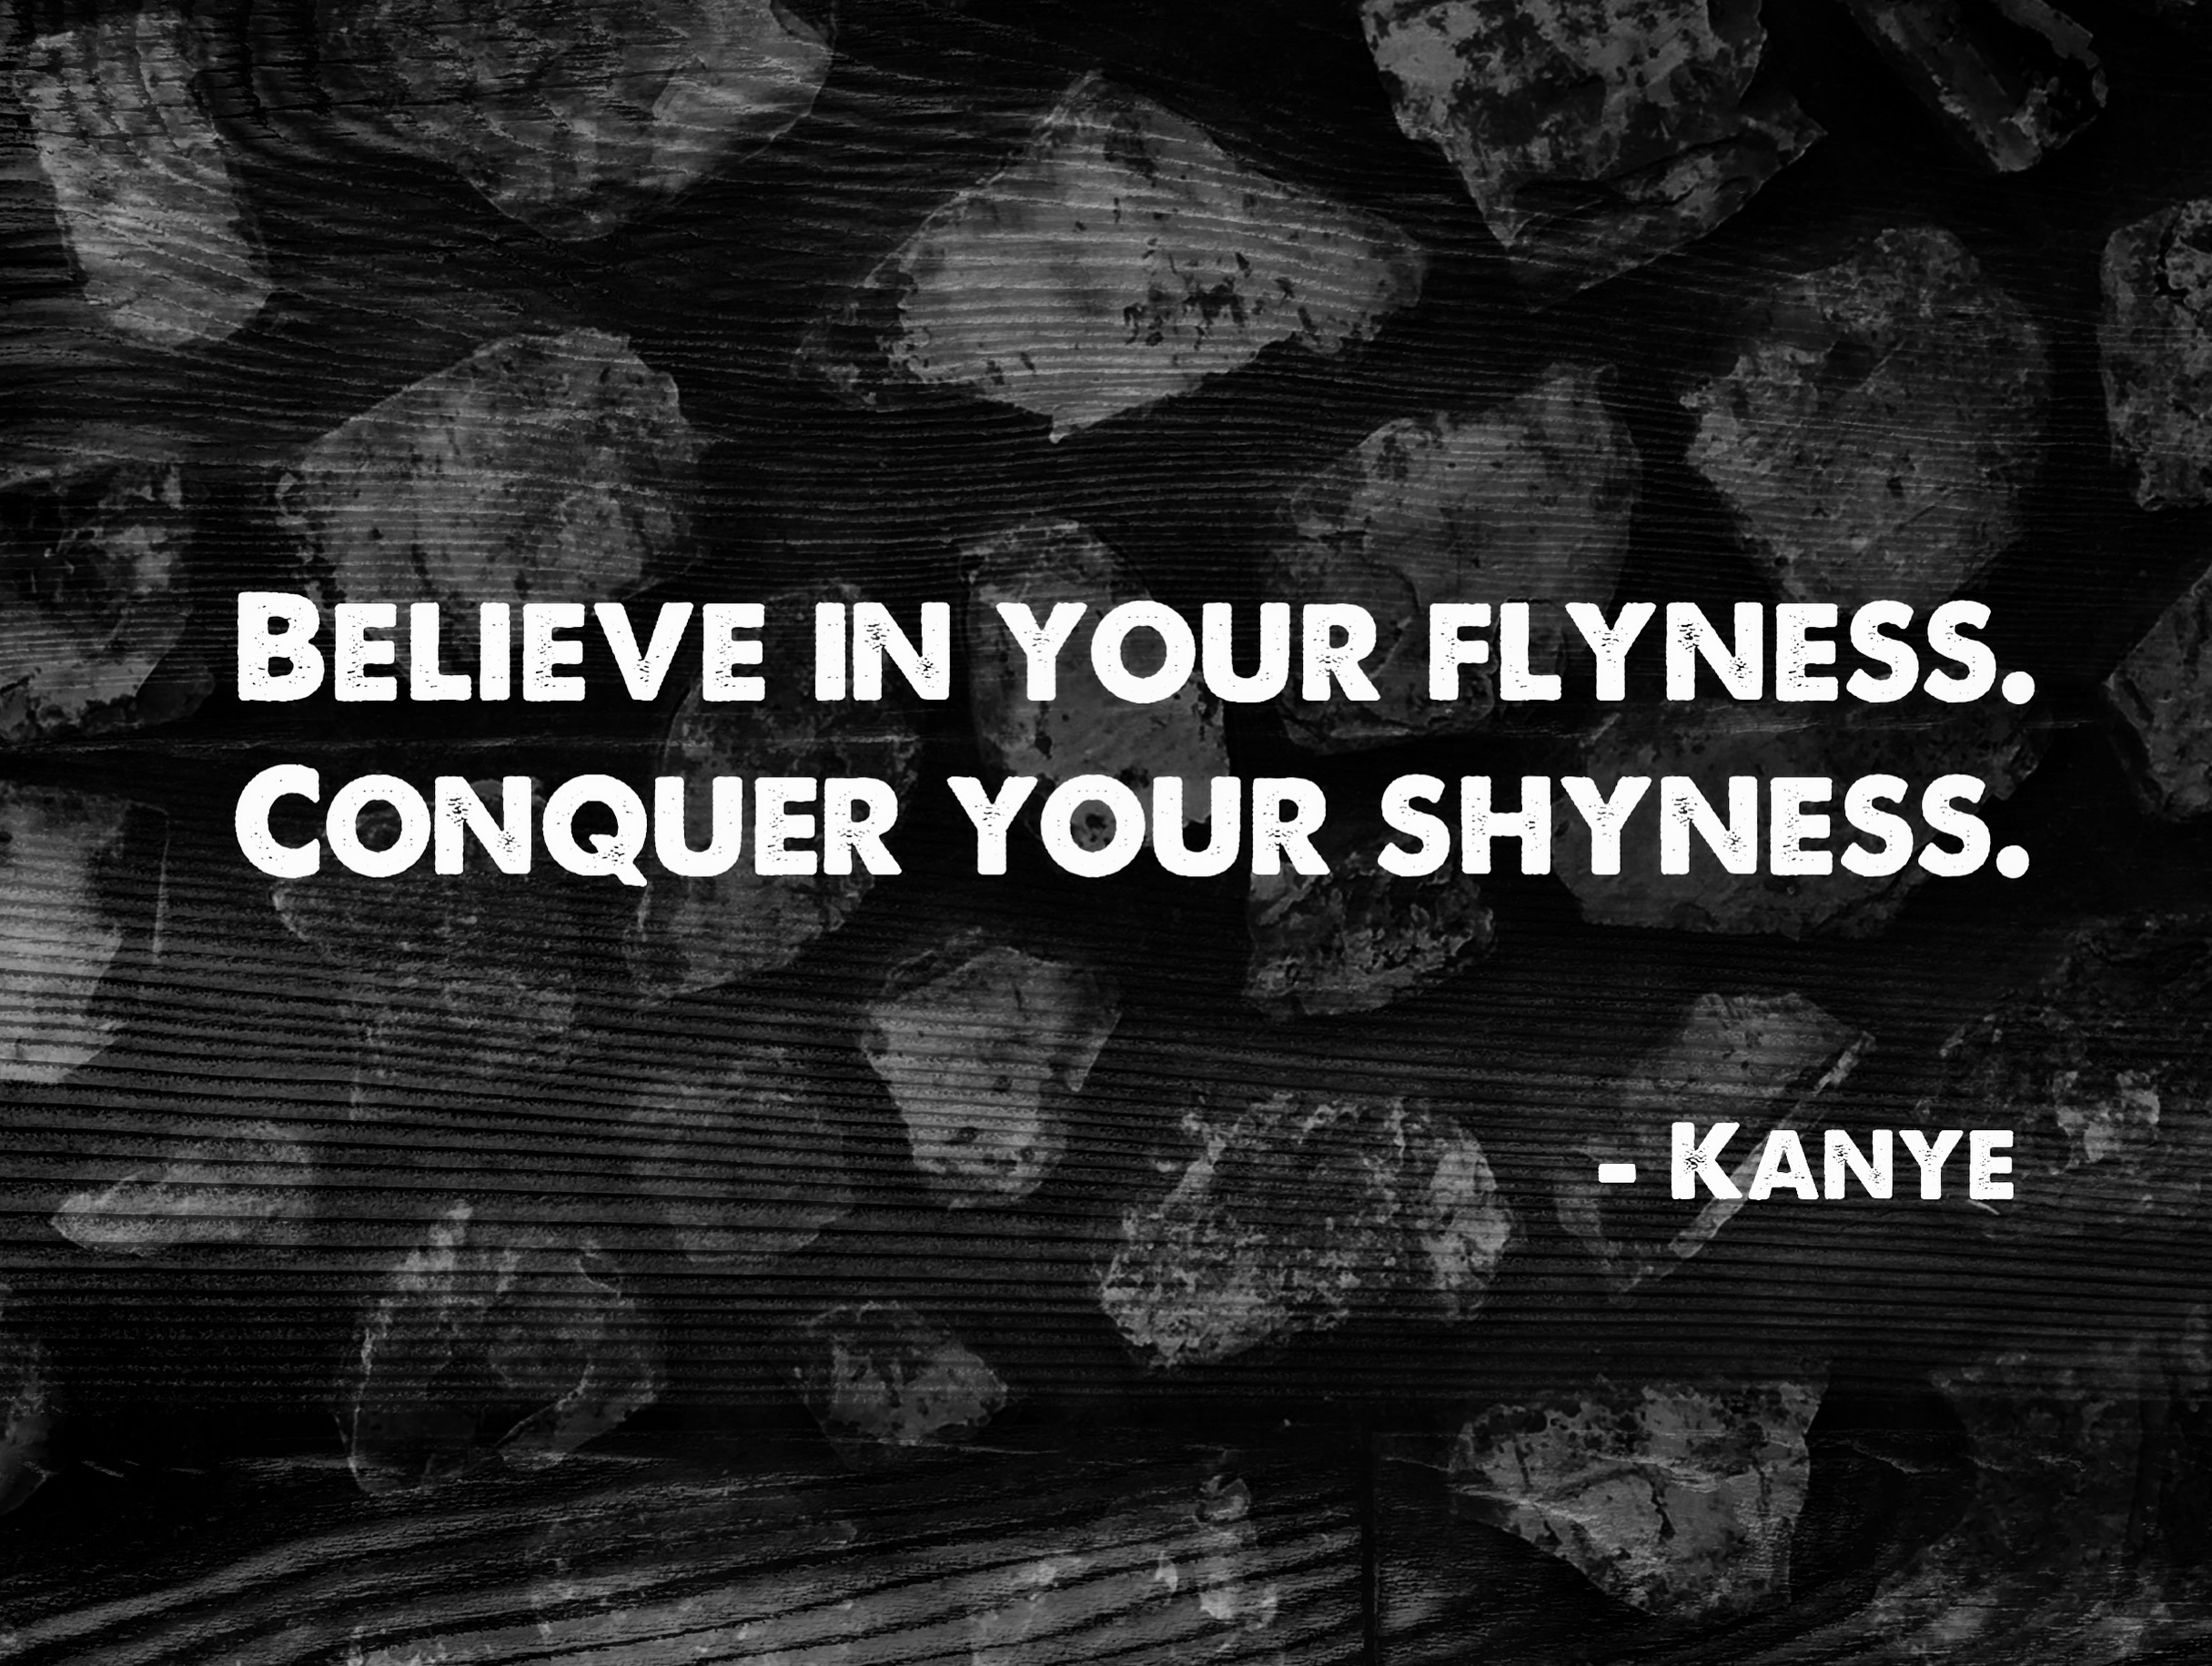 Conquer your shyness